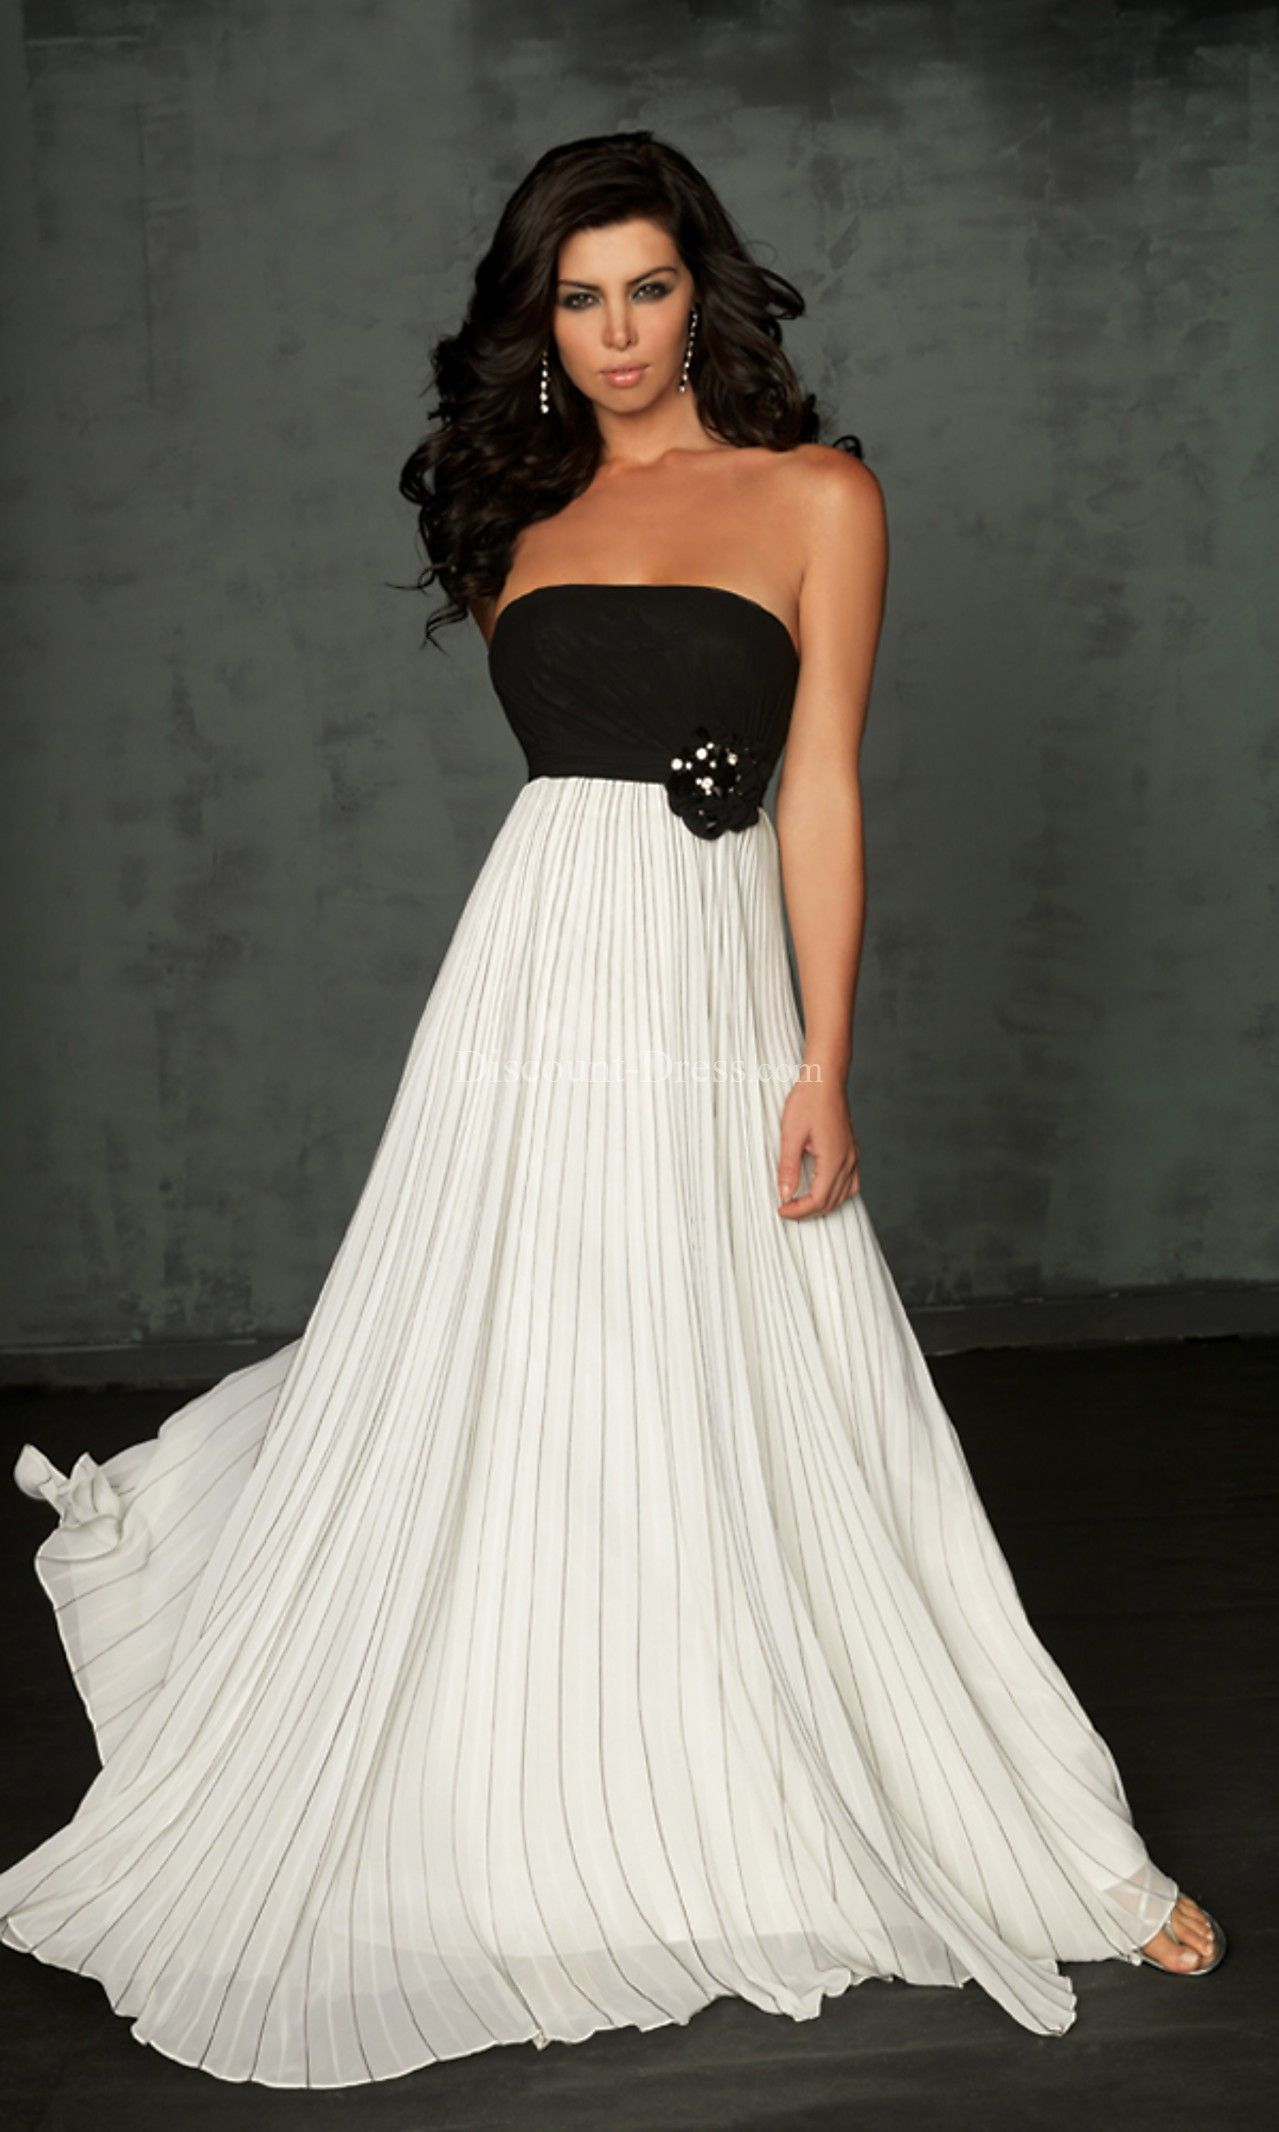 17 Best images about Exclusive Black and White Formal Dresses on ...